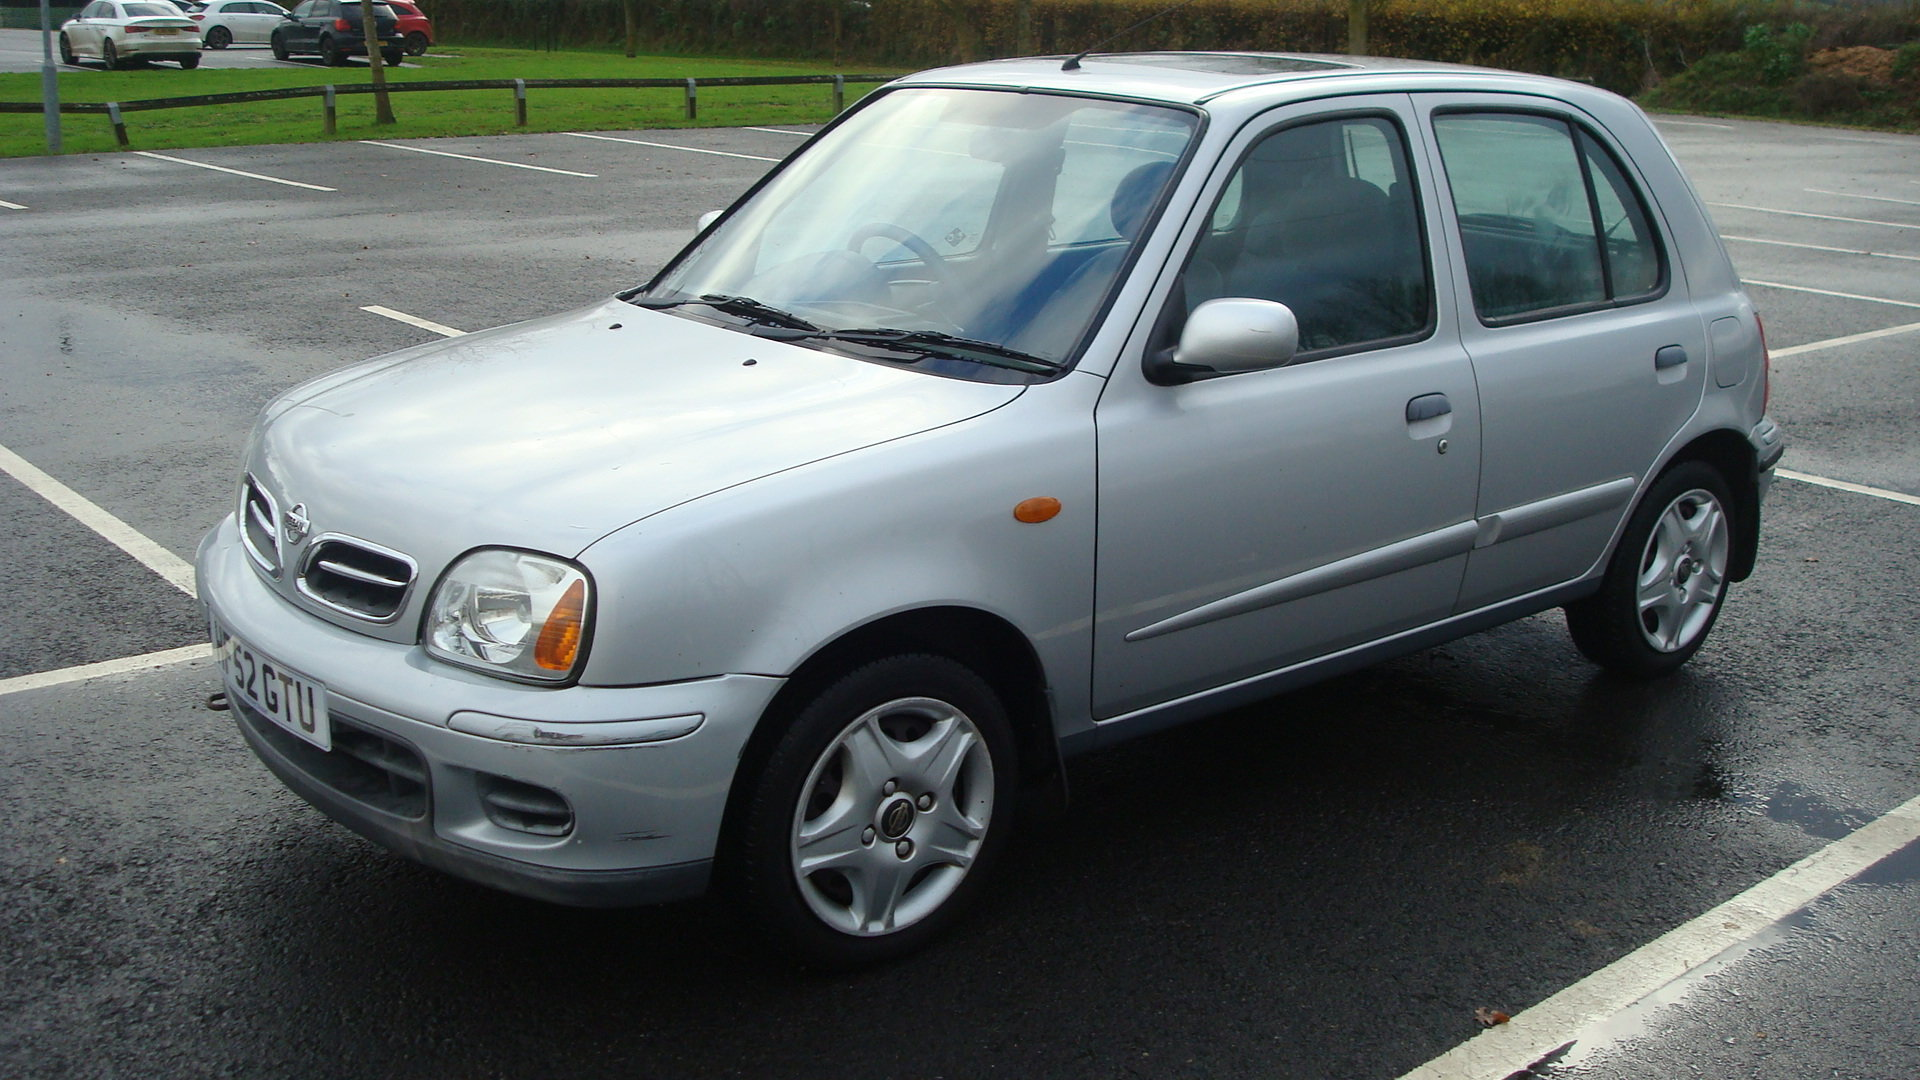 2002 Nissan Micra 1.0 Tempest Auto SOLD (picture 2 of 6)